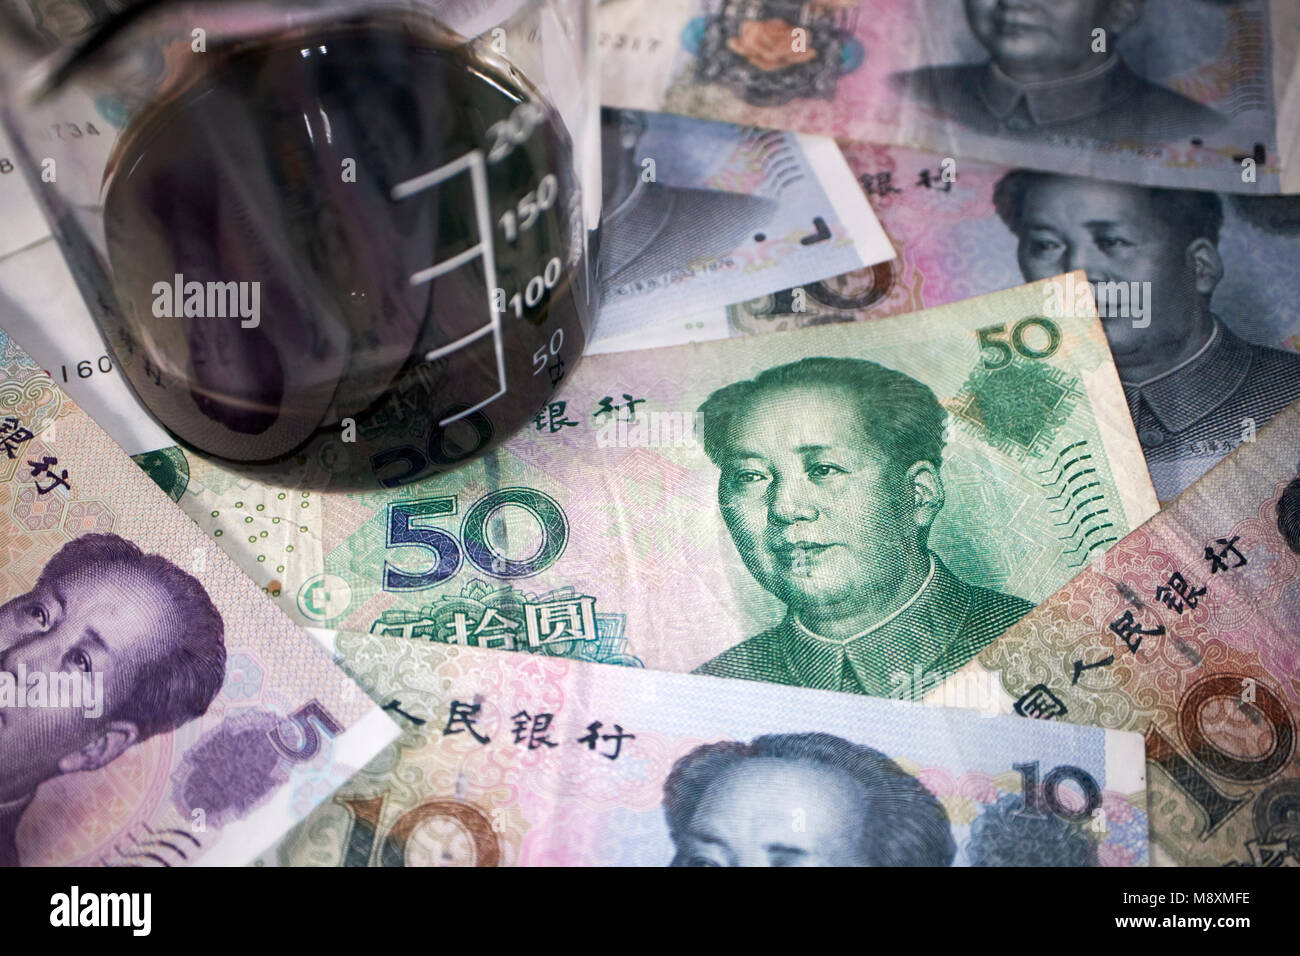 jar of crude oil with chinese yuan renminbi currency trading concept - Stock Image